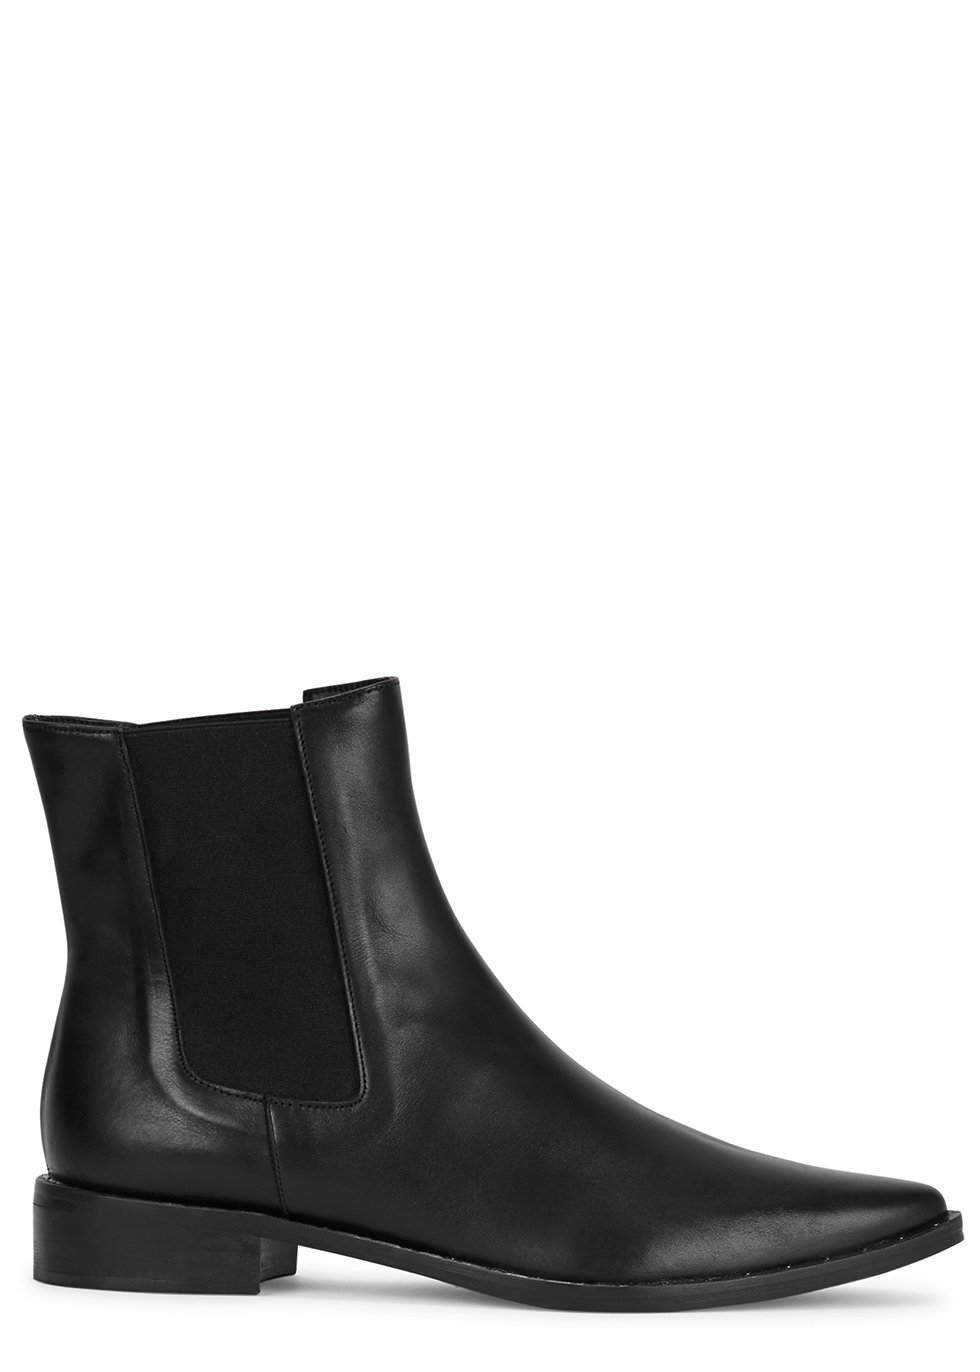 FREDA SALVADOR Joan Black Leather Chelsea Boots